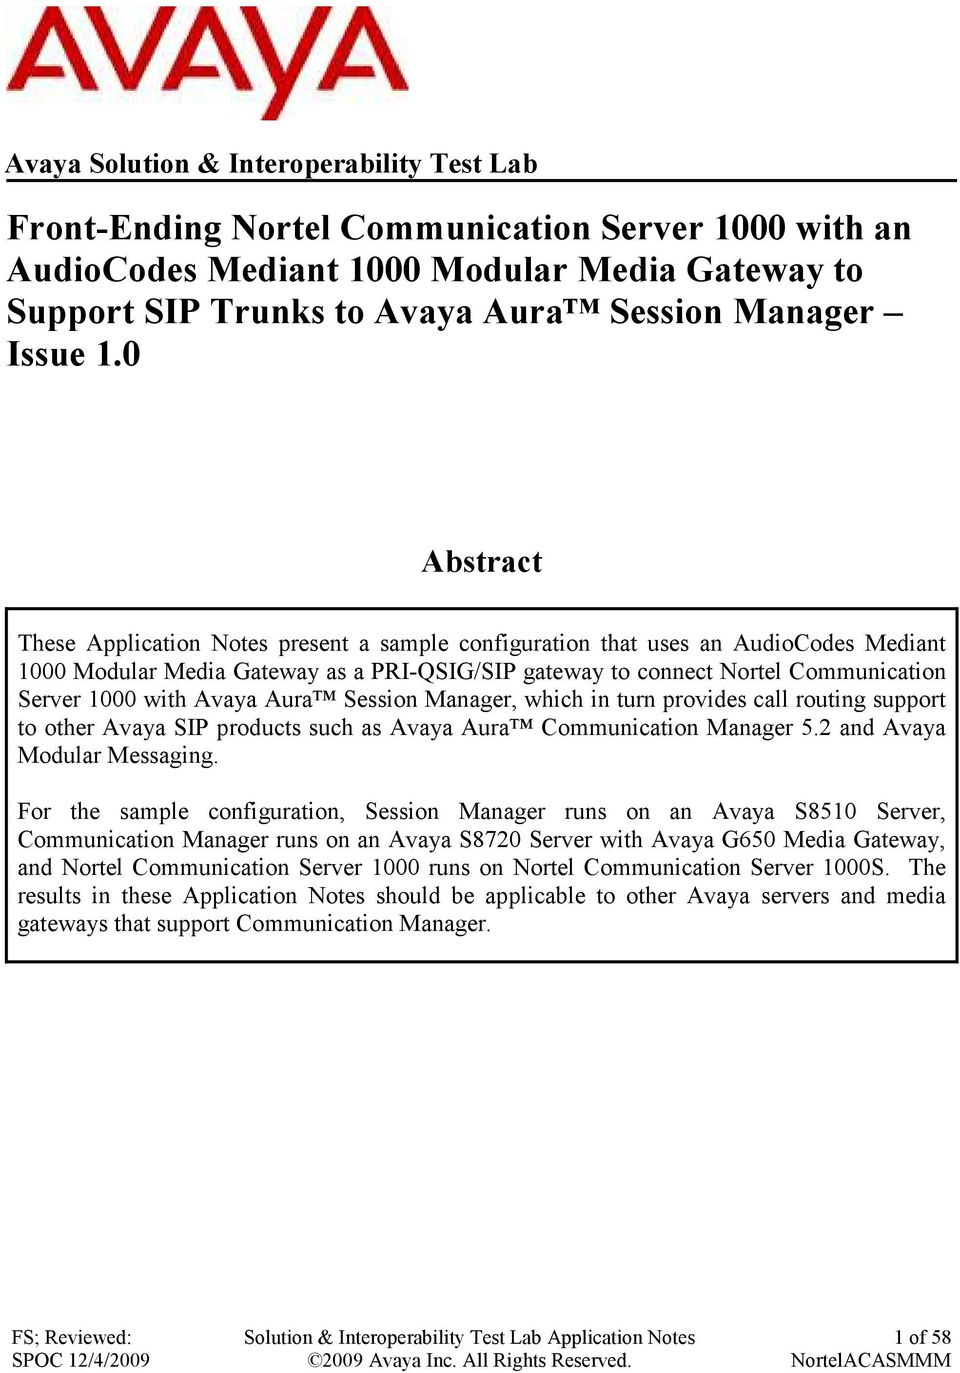 0 Abstract These Application Notes present a sample configuration that uses an AudioCodes Mediant 1000 Modular Media Gateway as a PRI-QSIG/SIP gateway to connect Nortel Communication Server 1000 with